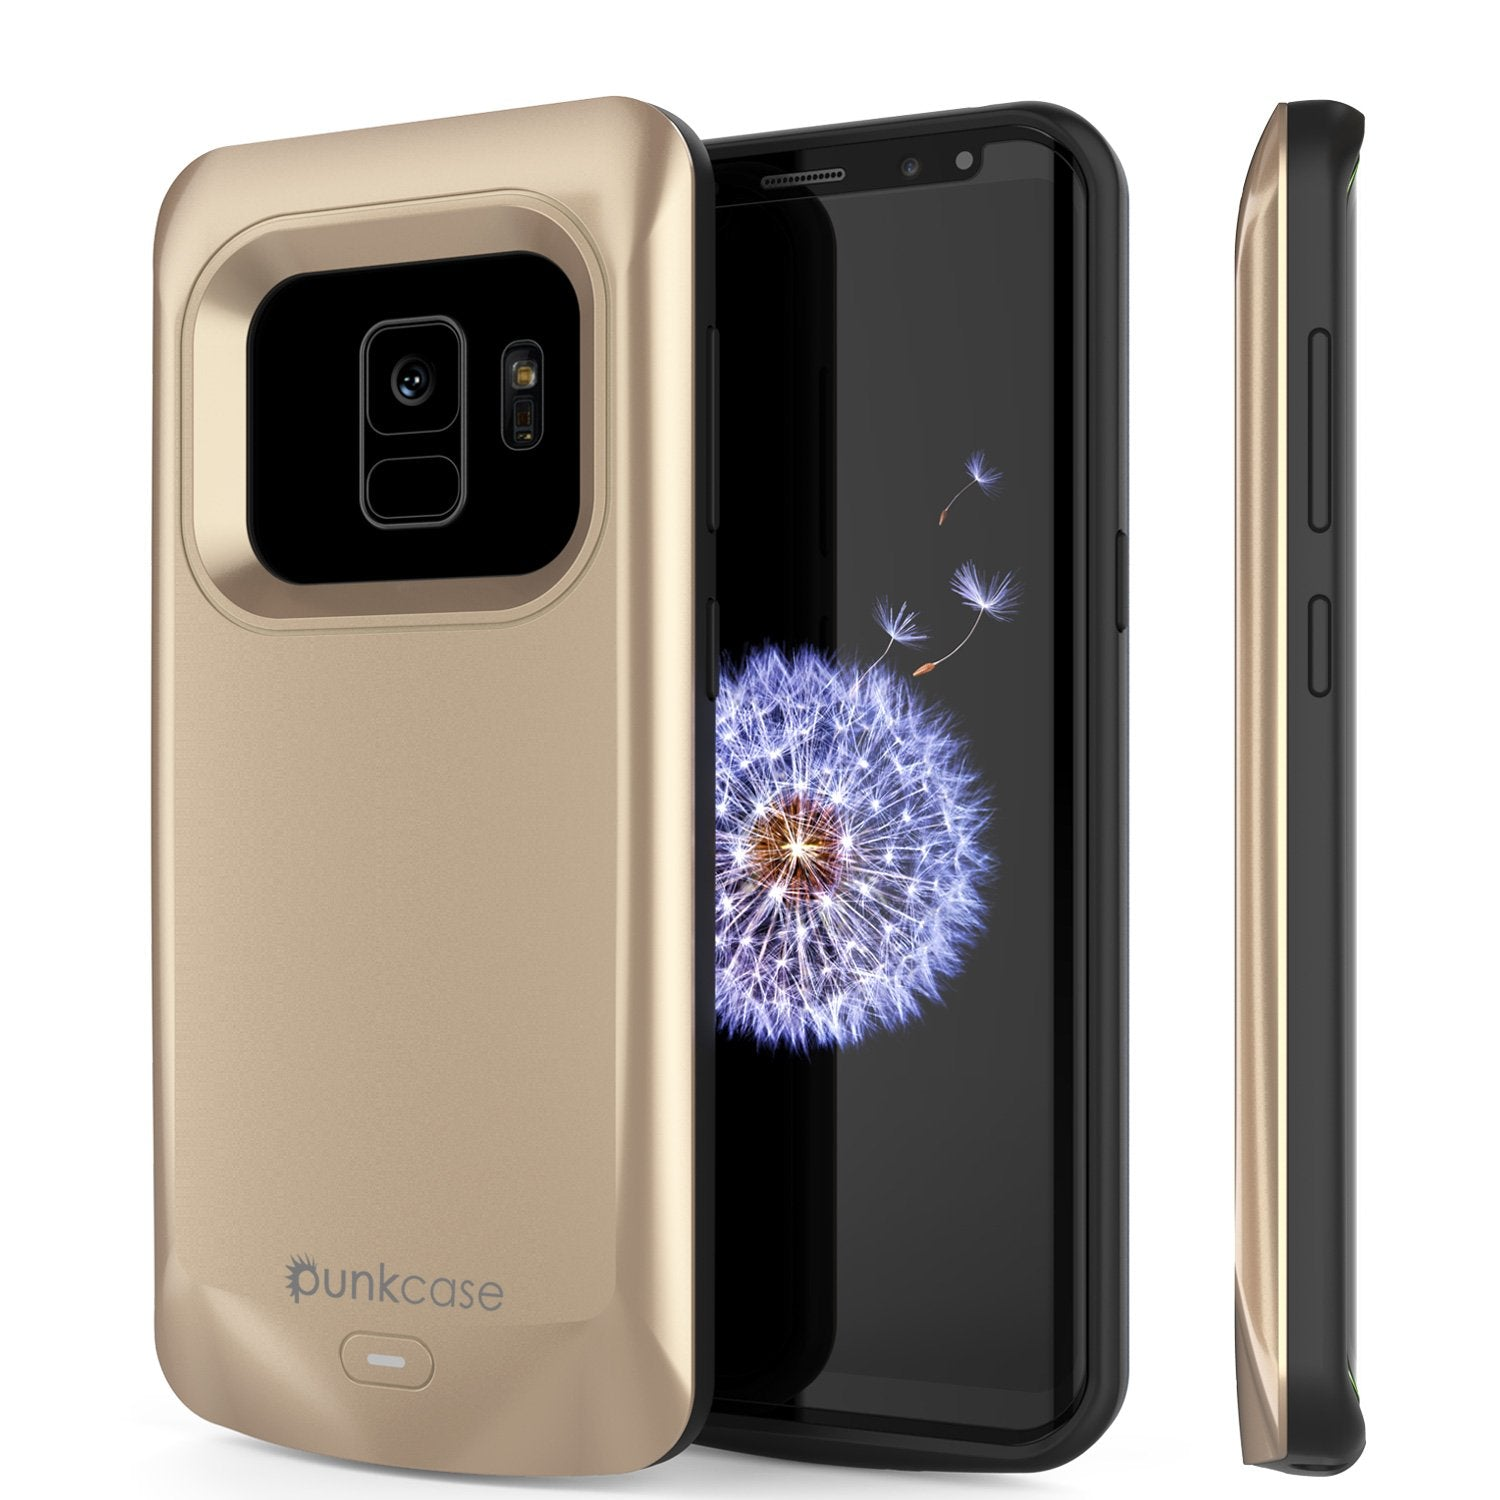 Galaxy S9 Battery Case, PunkJuice 5000mAH Fast Charging Power Bank W/ Screen Protector | Integrated USB Port | IntelSwitch | Slim, Secure and Reliable | Suitable for Samsung Galaxy S9 [Gold]